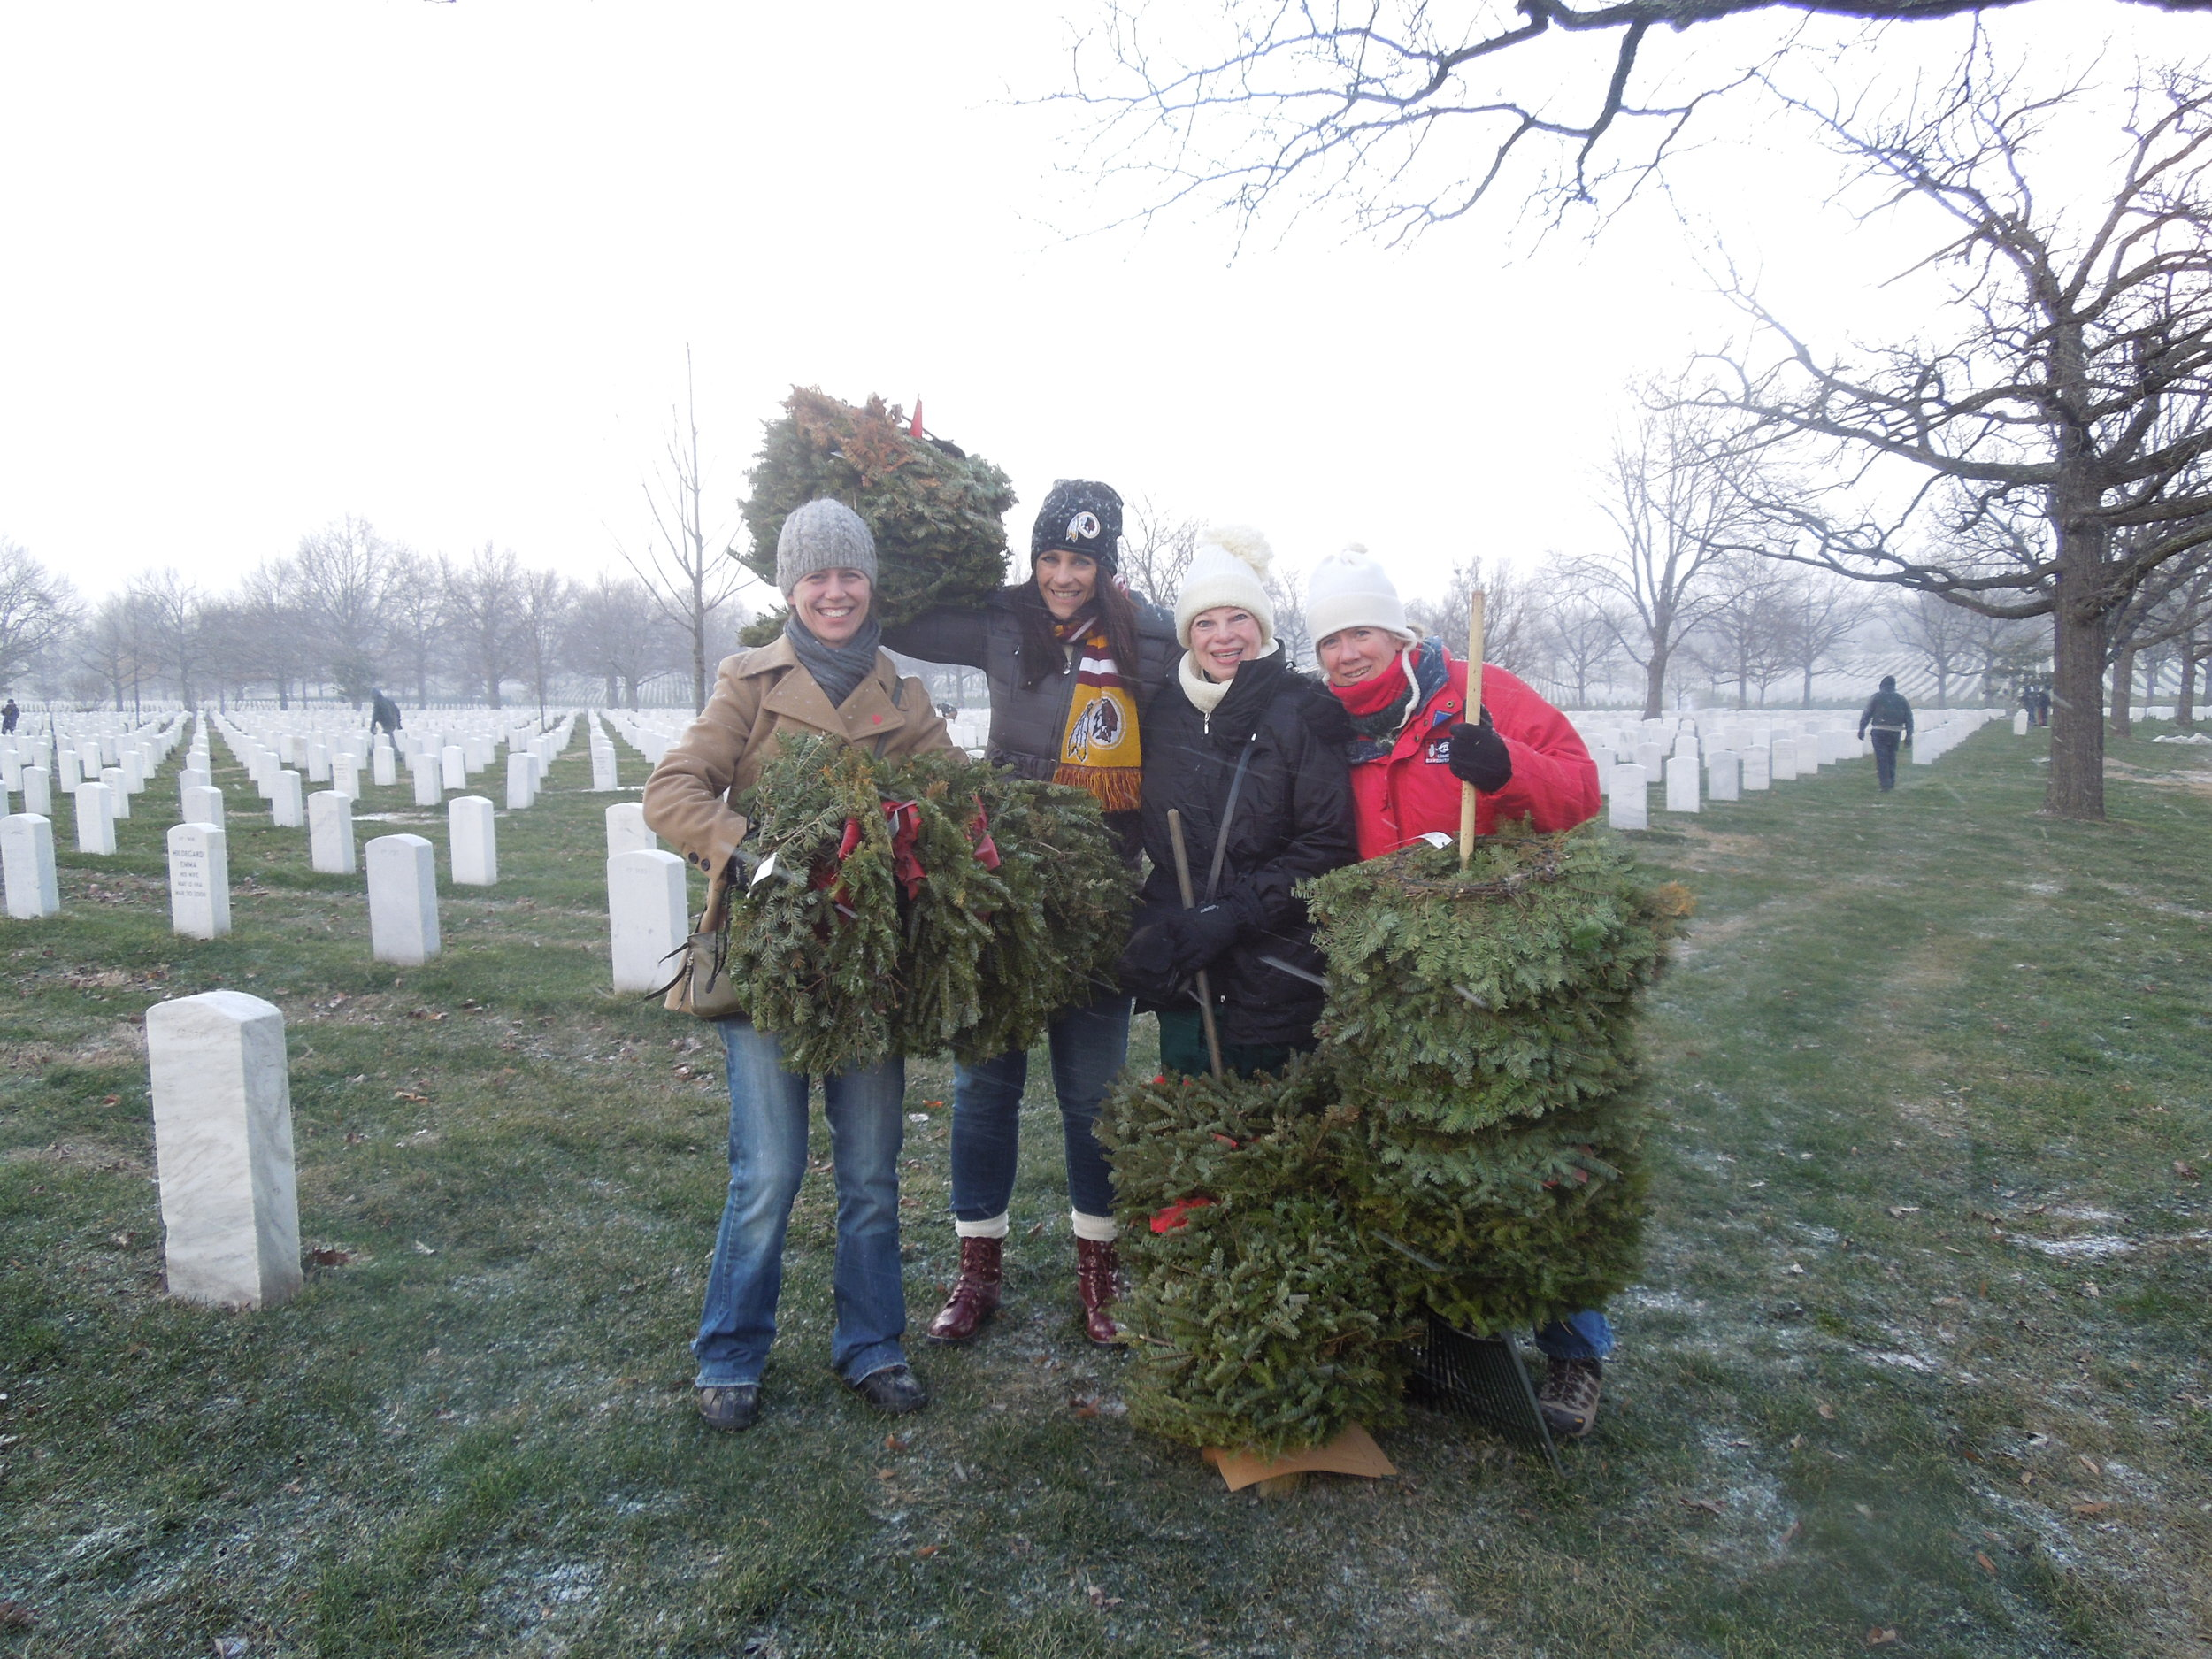 Wreath clean up, Arlington National Cemetery